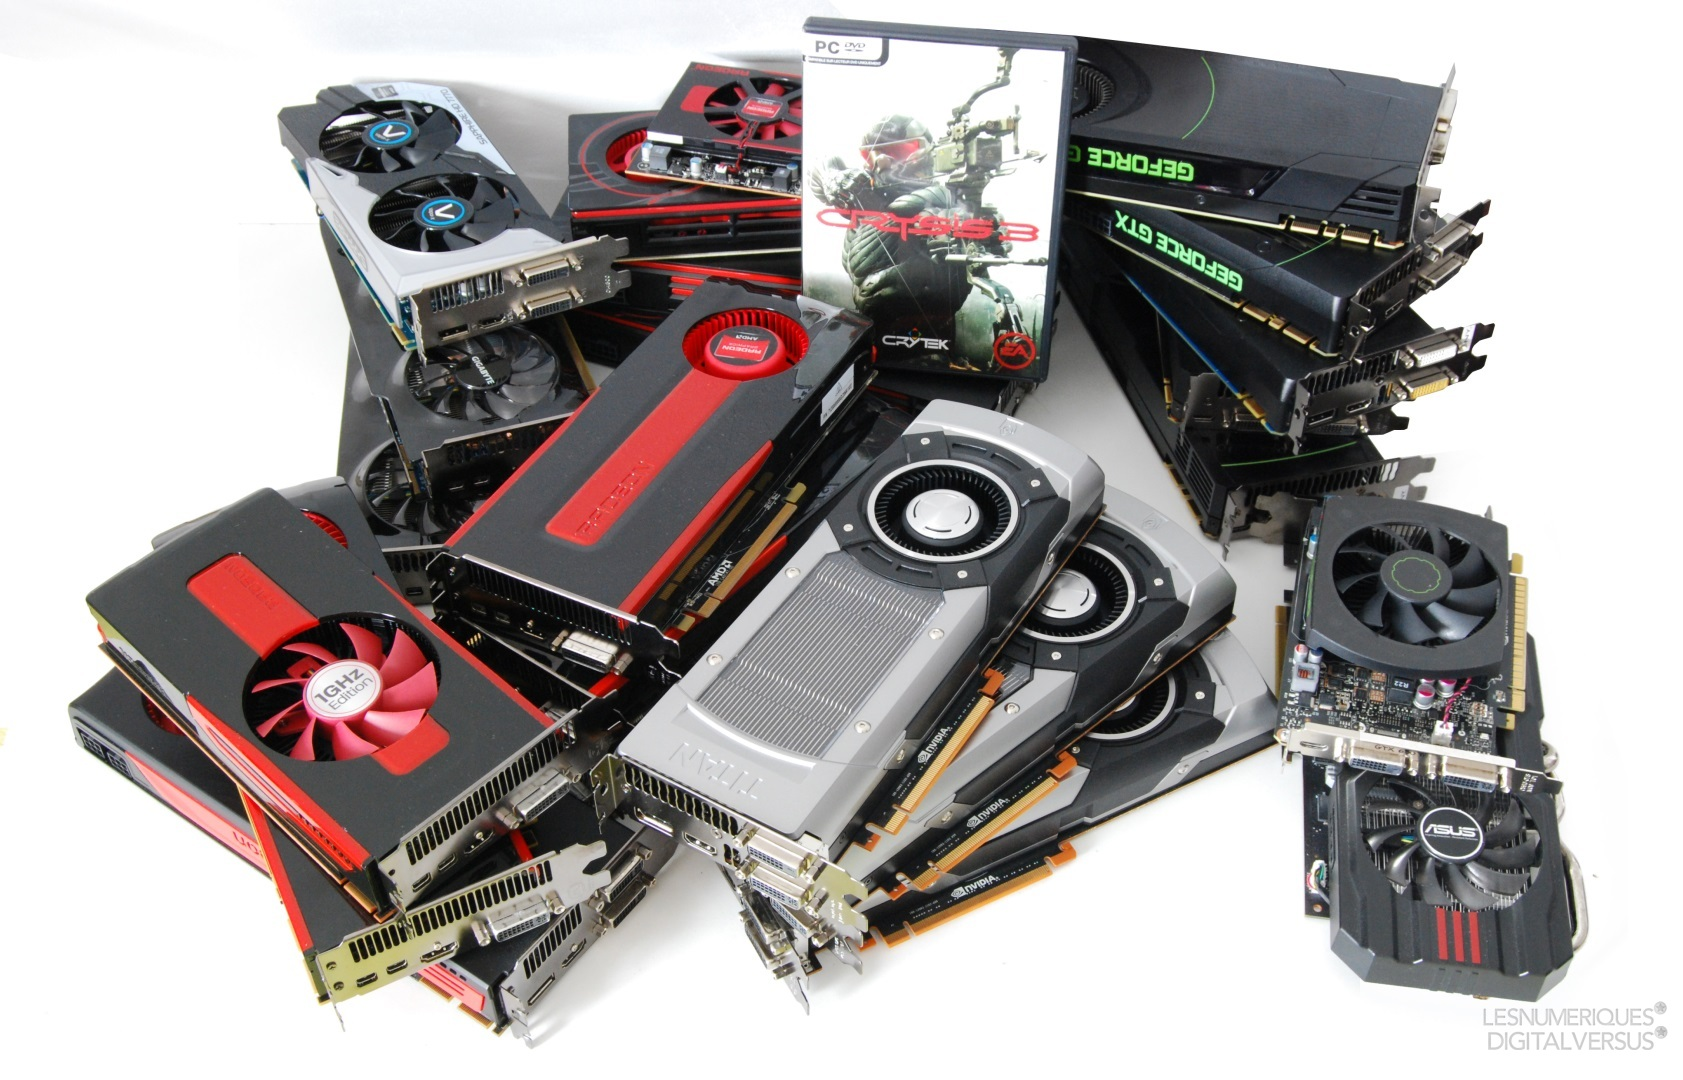 graphics_cards is the most important part for a gaming pc